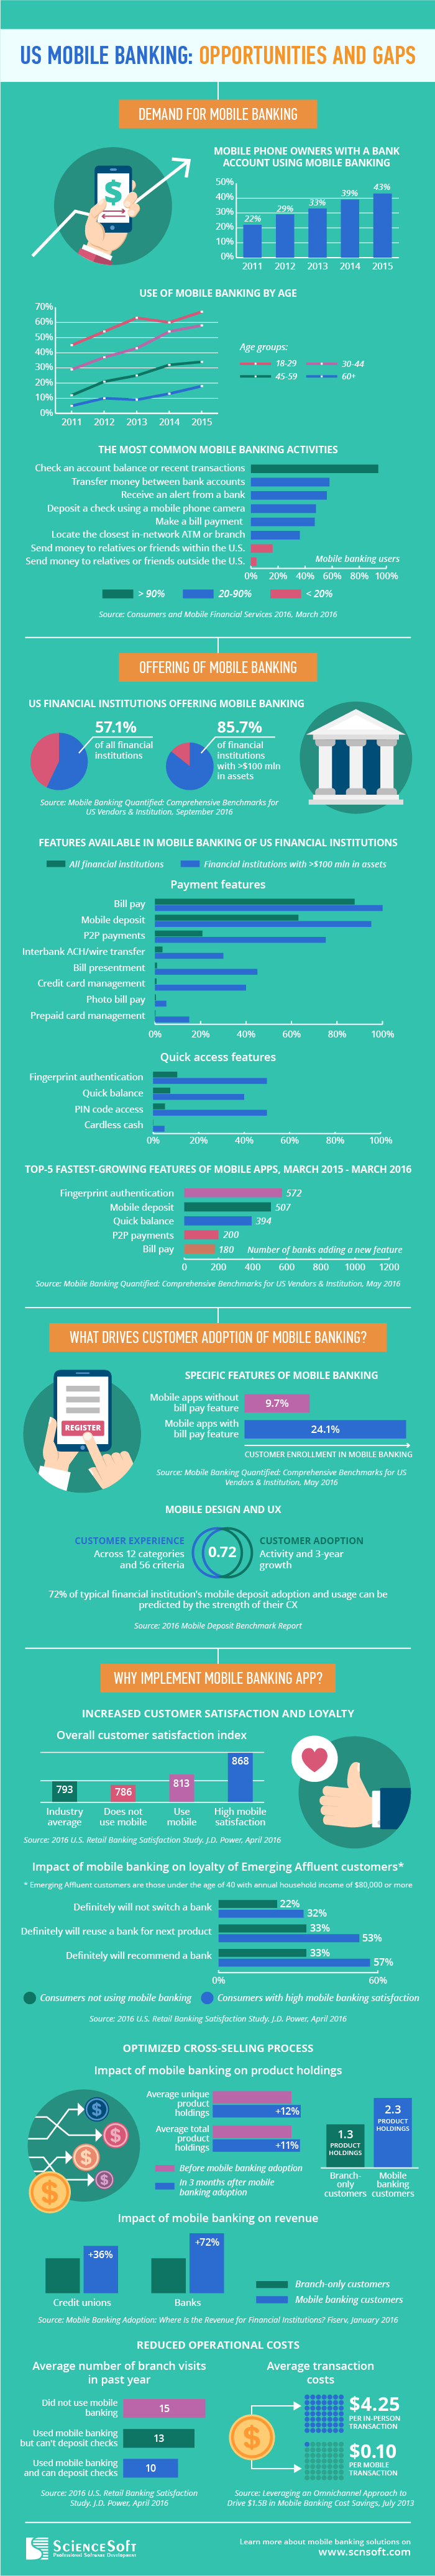 US Mobile Banking Infographic